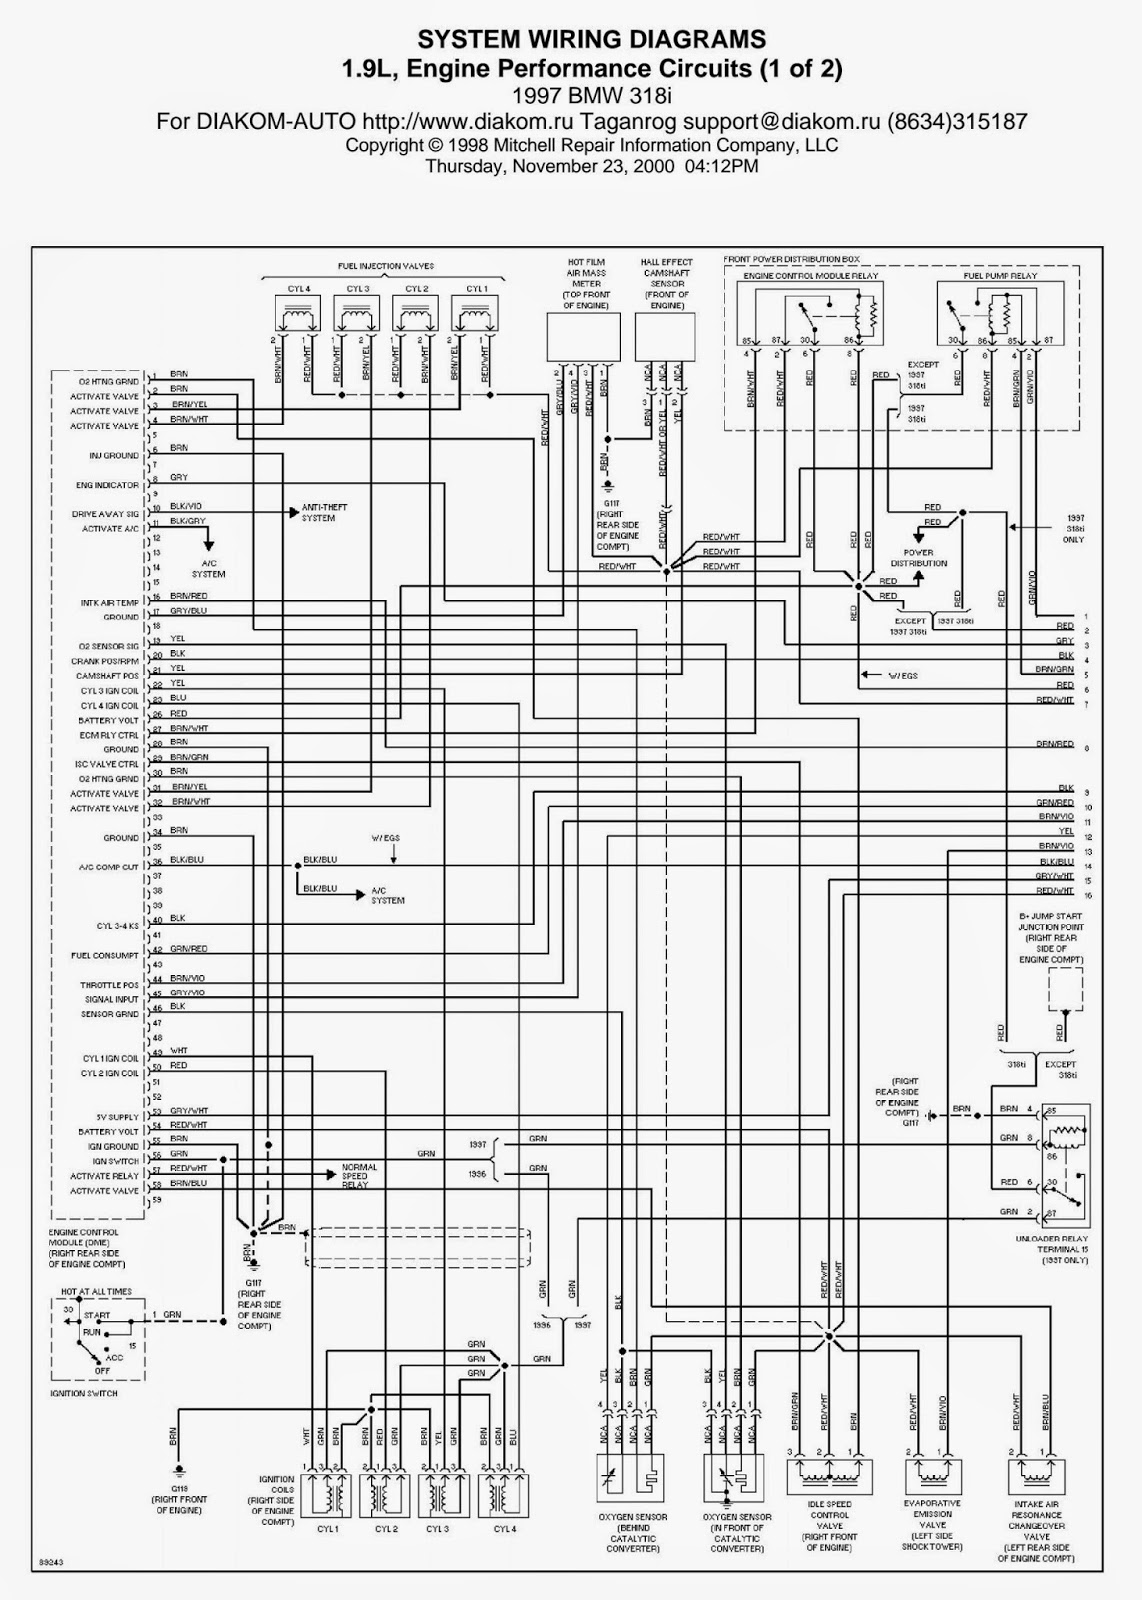 1997 bmw 528i engine diagram wiring diagrams and free manual ebooks: 1997 bmw 318i 1.9l ... 1997 bmw 528i wiring diagram #2